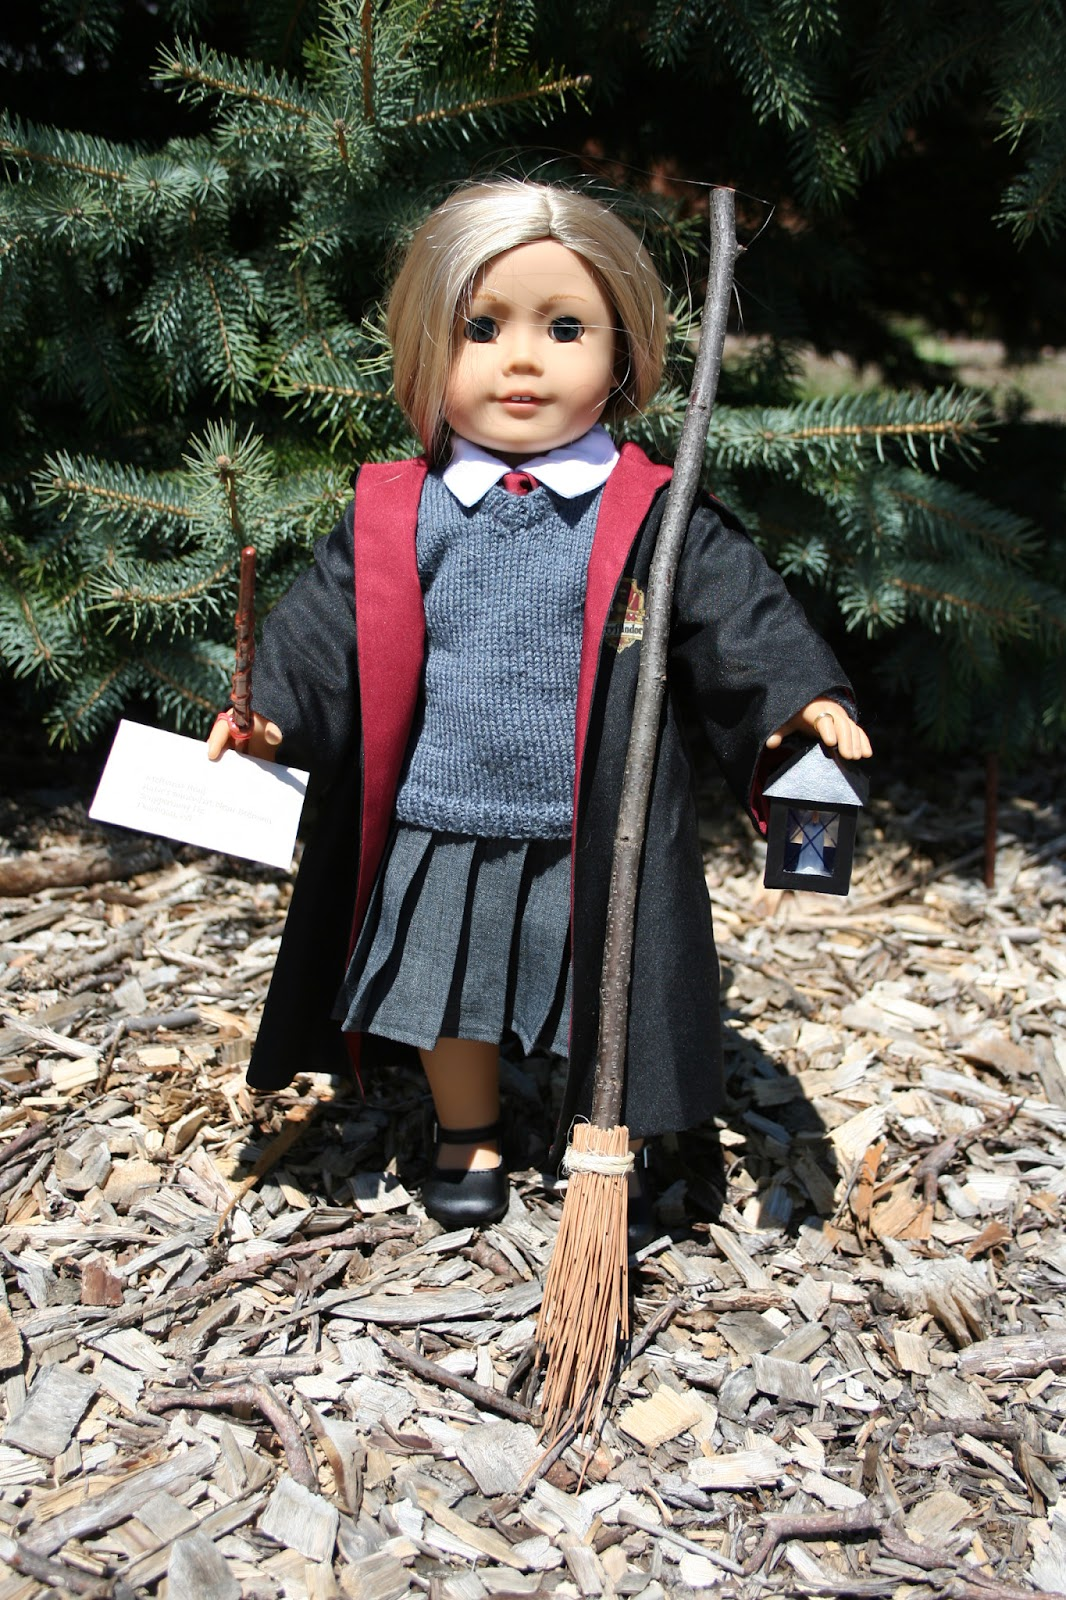 Arts And Crafts For Your American Girl Doll: Harry Potter